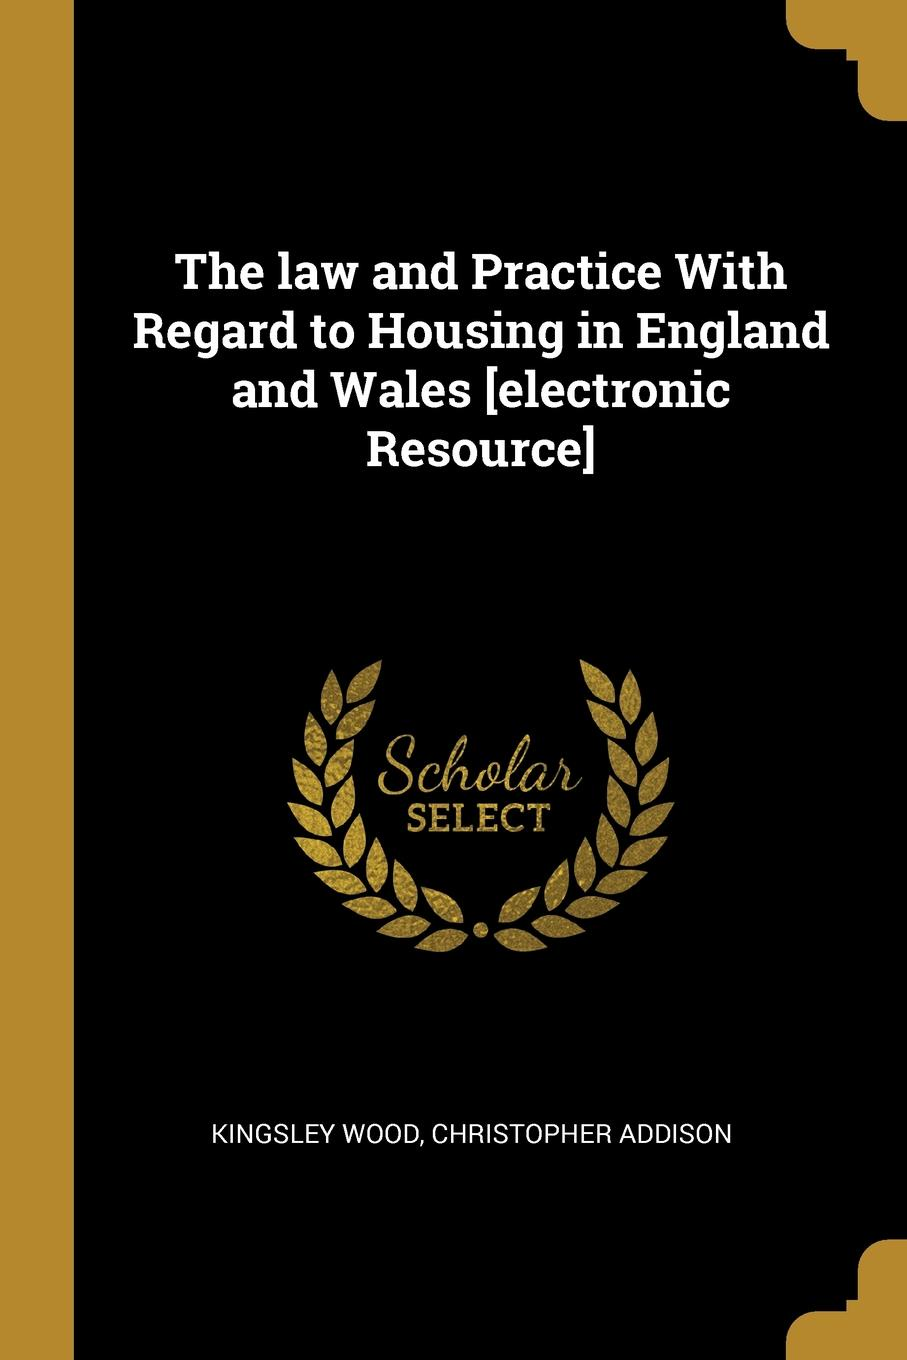 Kingsley Wood, Christopher Addison The law and Practice With Regard to Housing in England and Wales .electronic Resource.